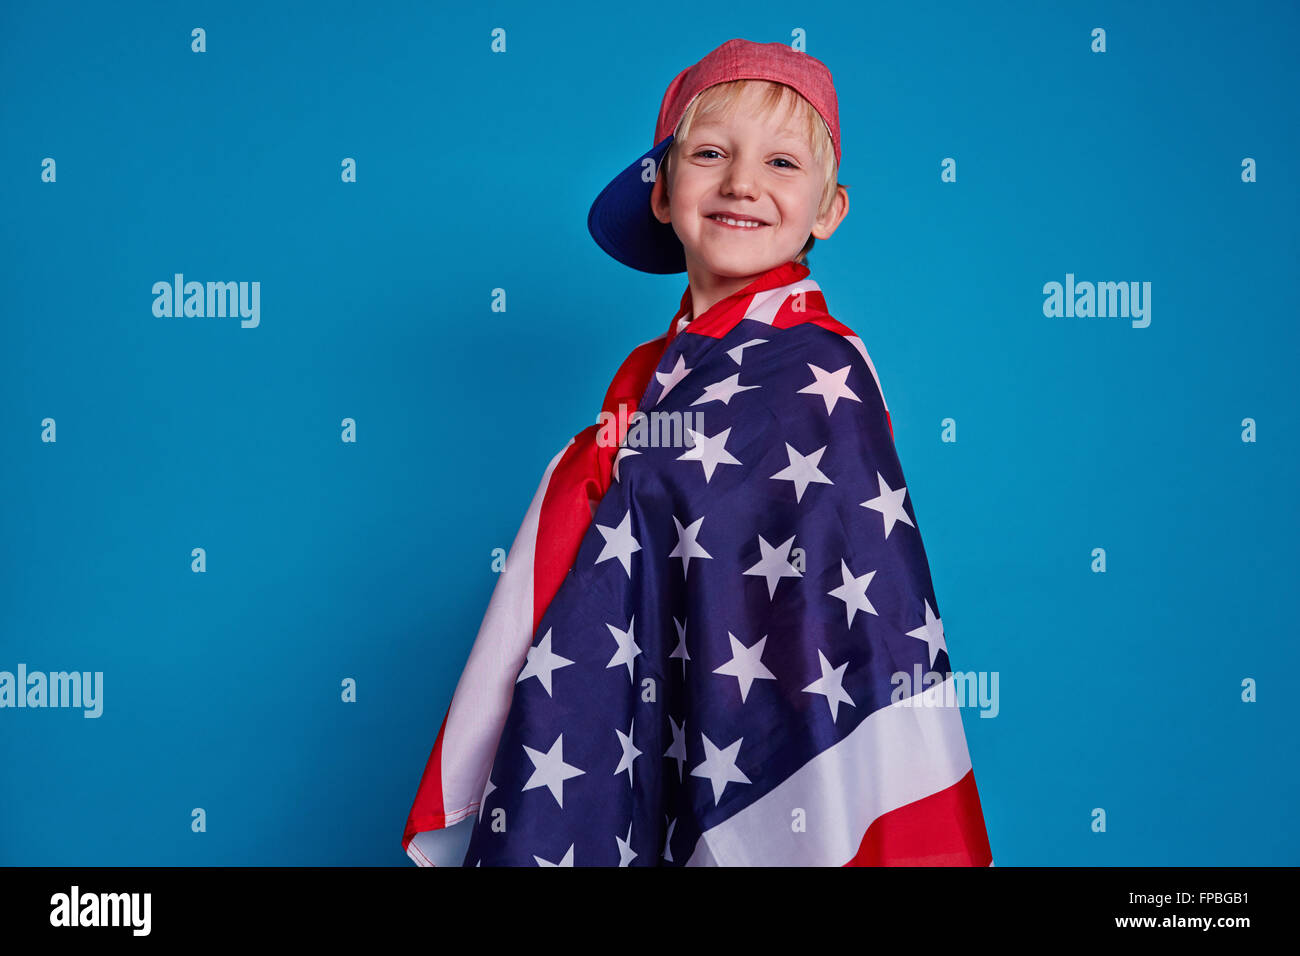 Smiling boy wrapped in American flag isolated on blue background - Stock Image